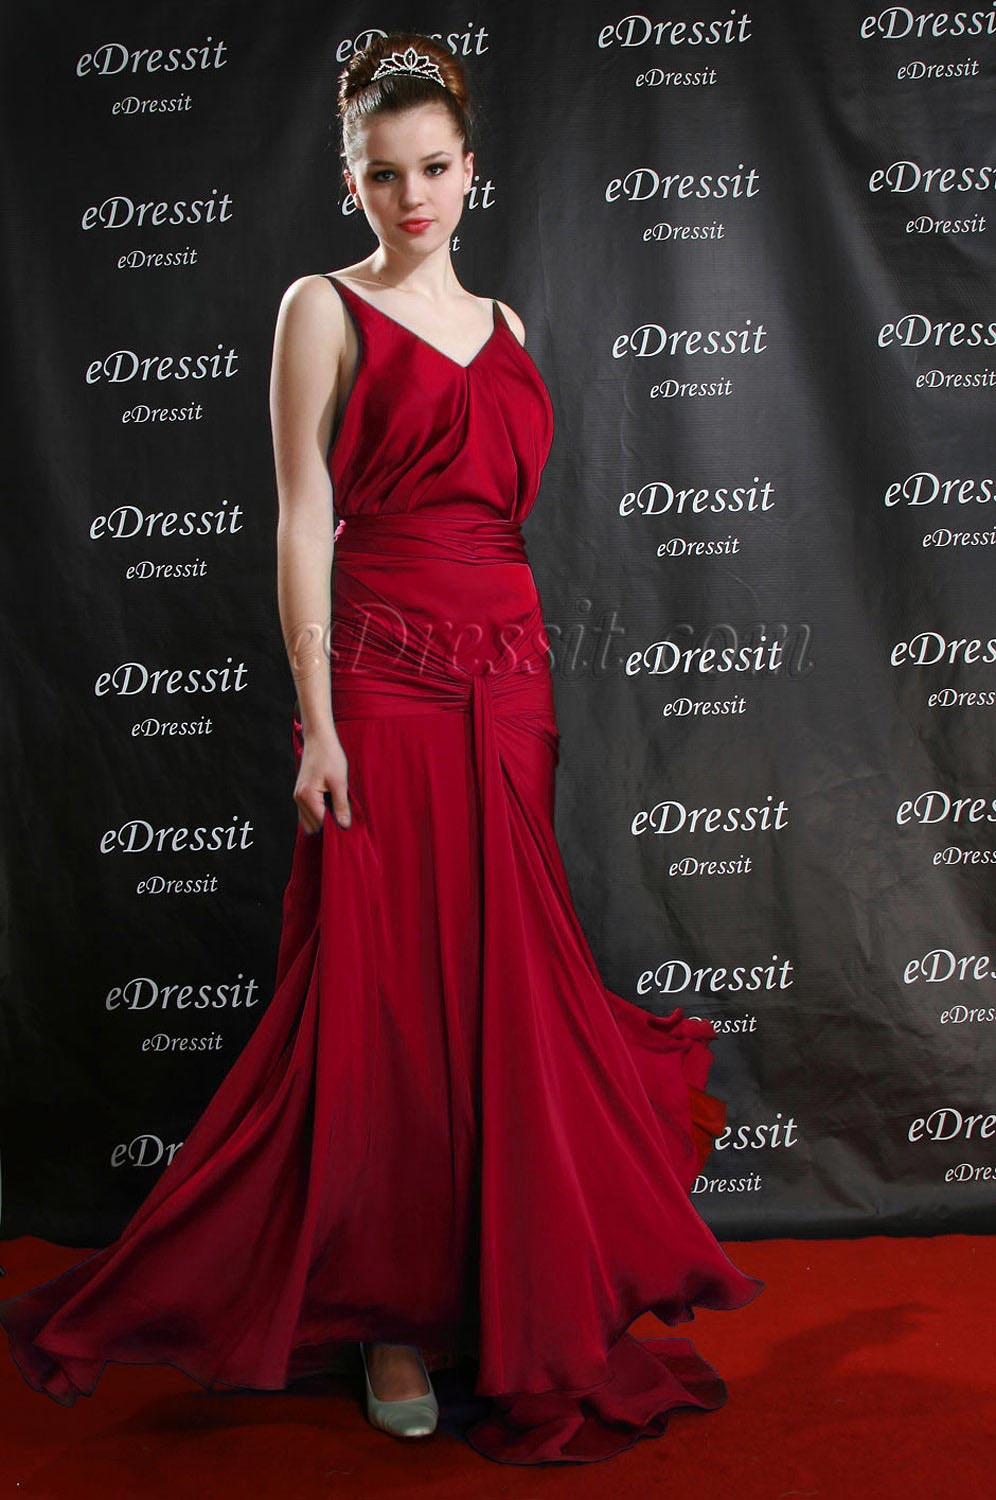 Clearance Sale ! eDressit Red Evening Prom Dress--UK16 (00082404b)